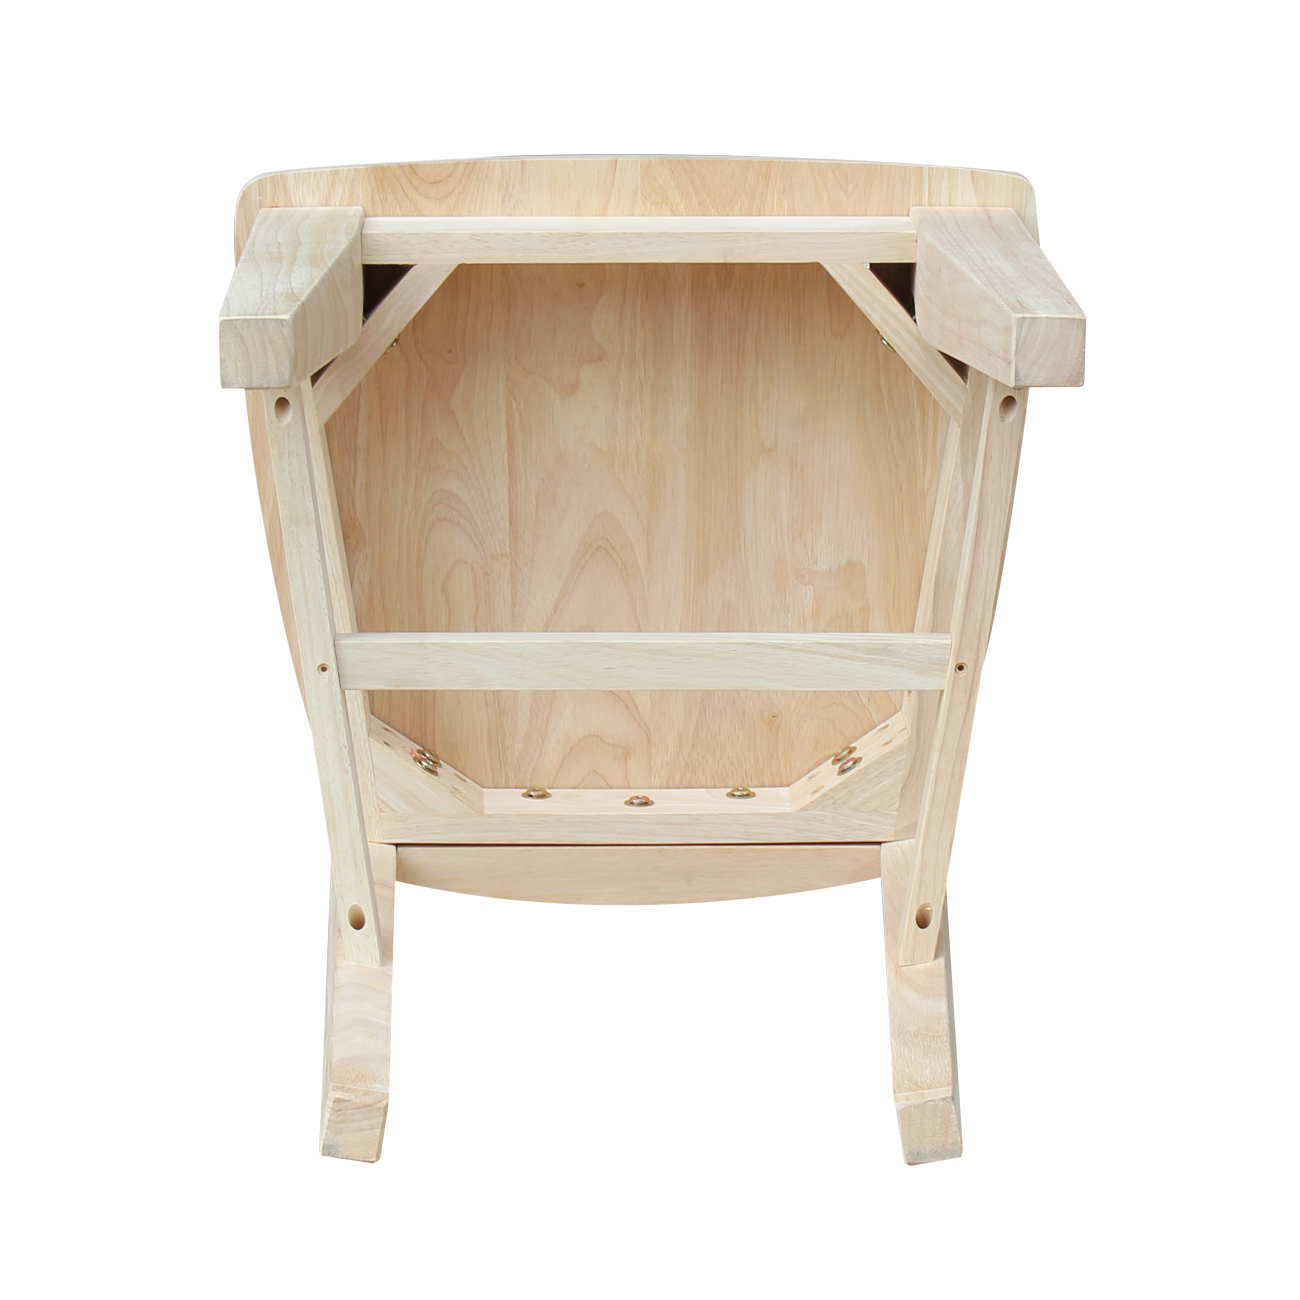 The Furniture In The Raw Canyon Dining Side Chair